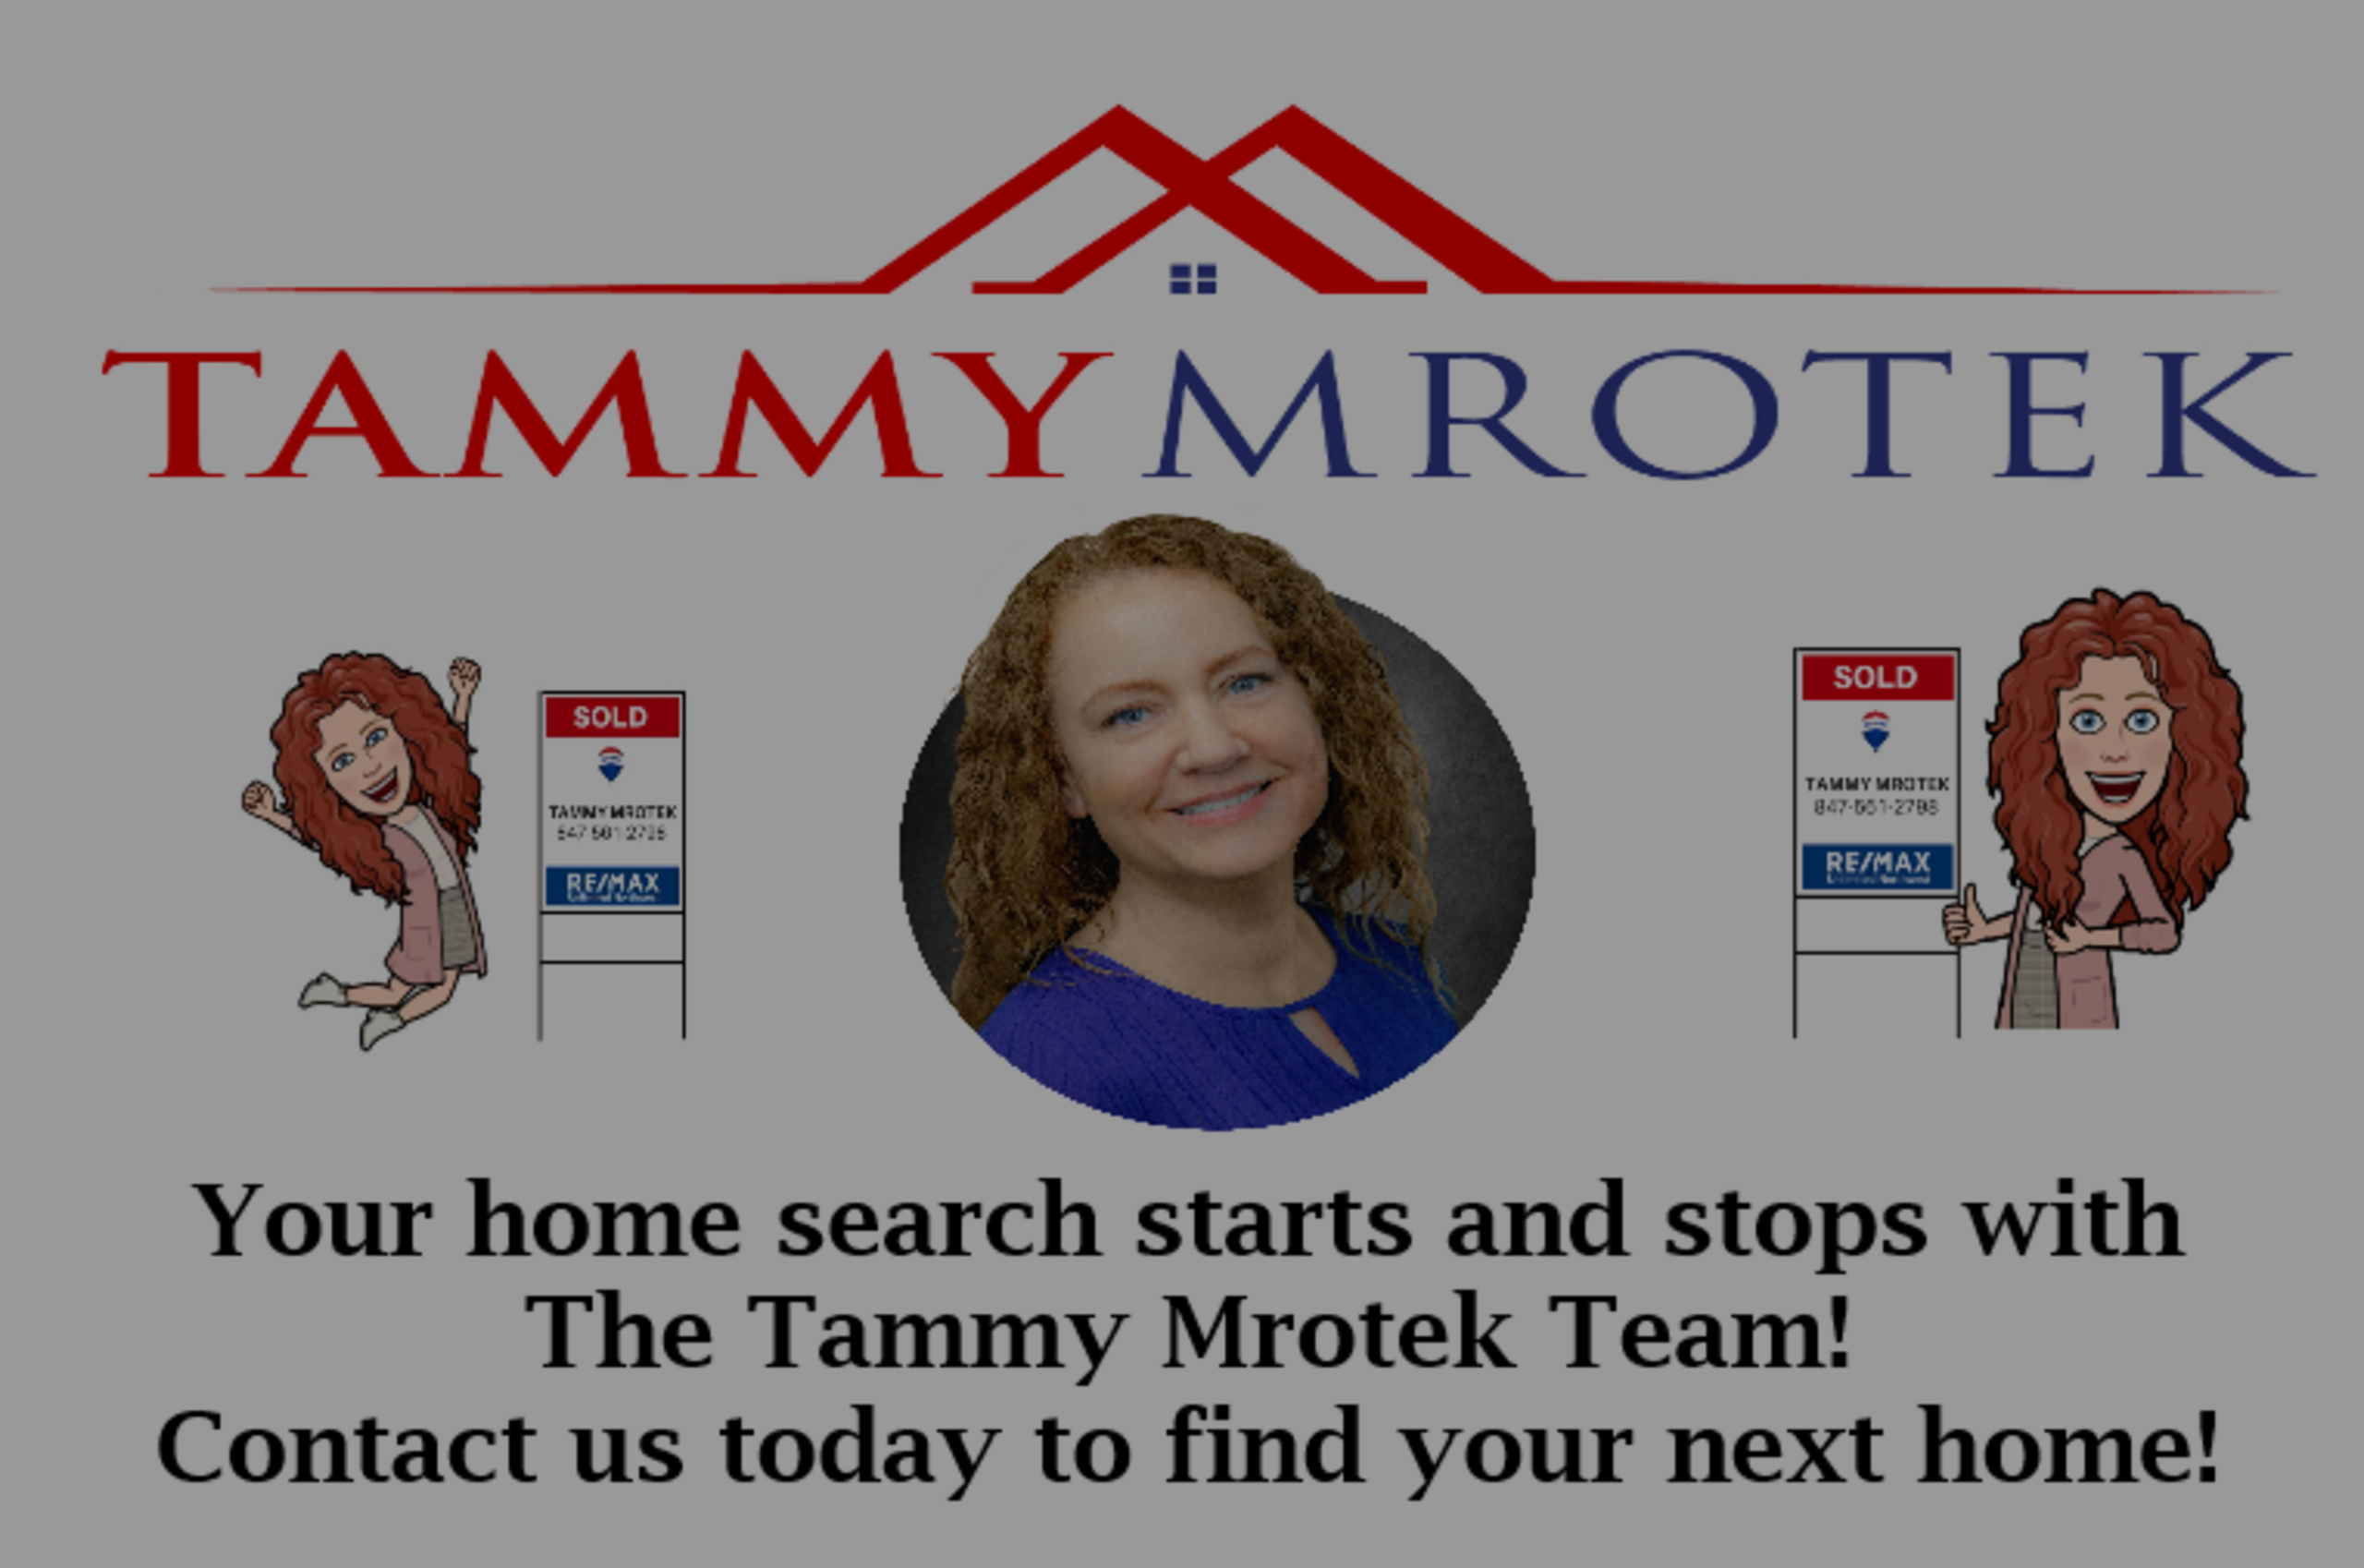 Start Your New Home Search With The Tammy Mrotek Team Today!